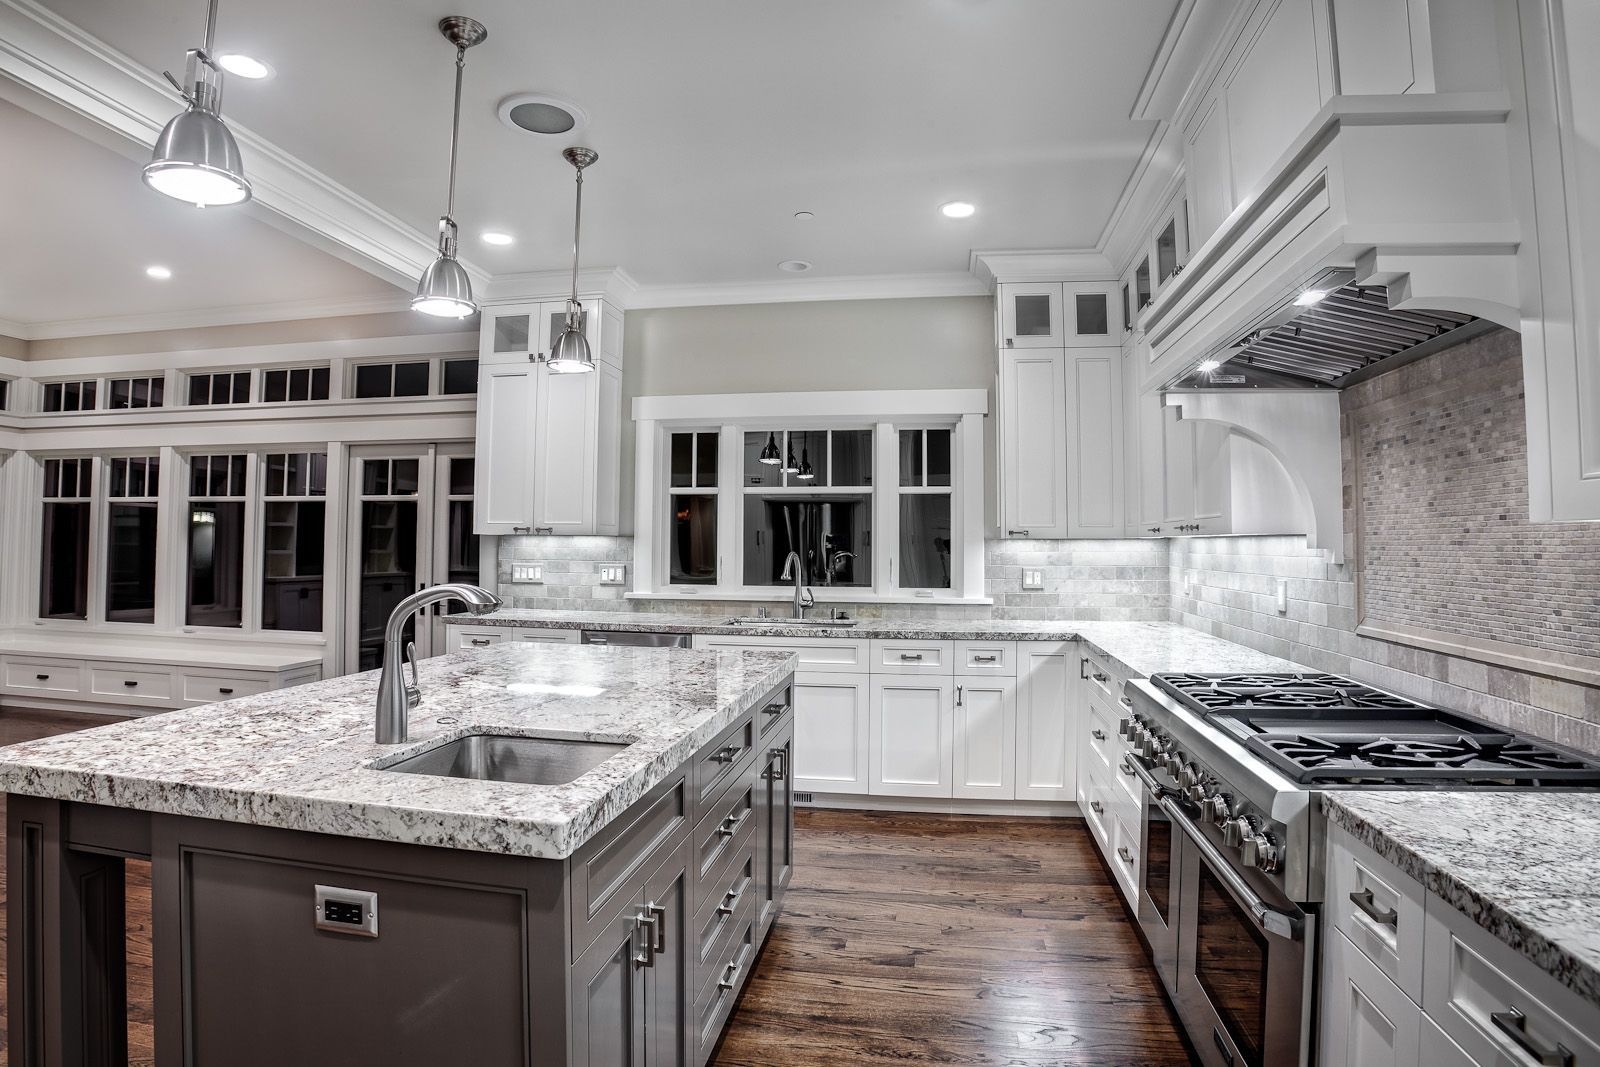 Whitecabinetskitchen Macavoy Modern White Kitchen Kitchen With - Kitchens with white cabinets